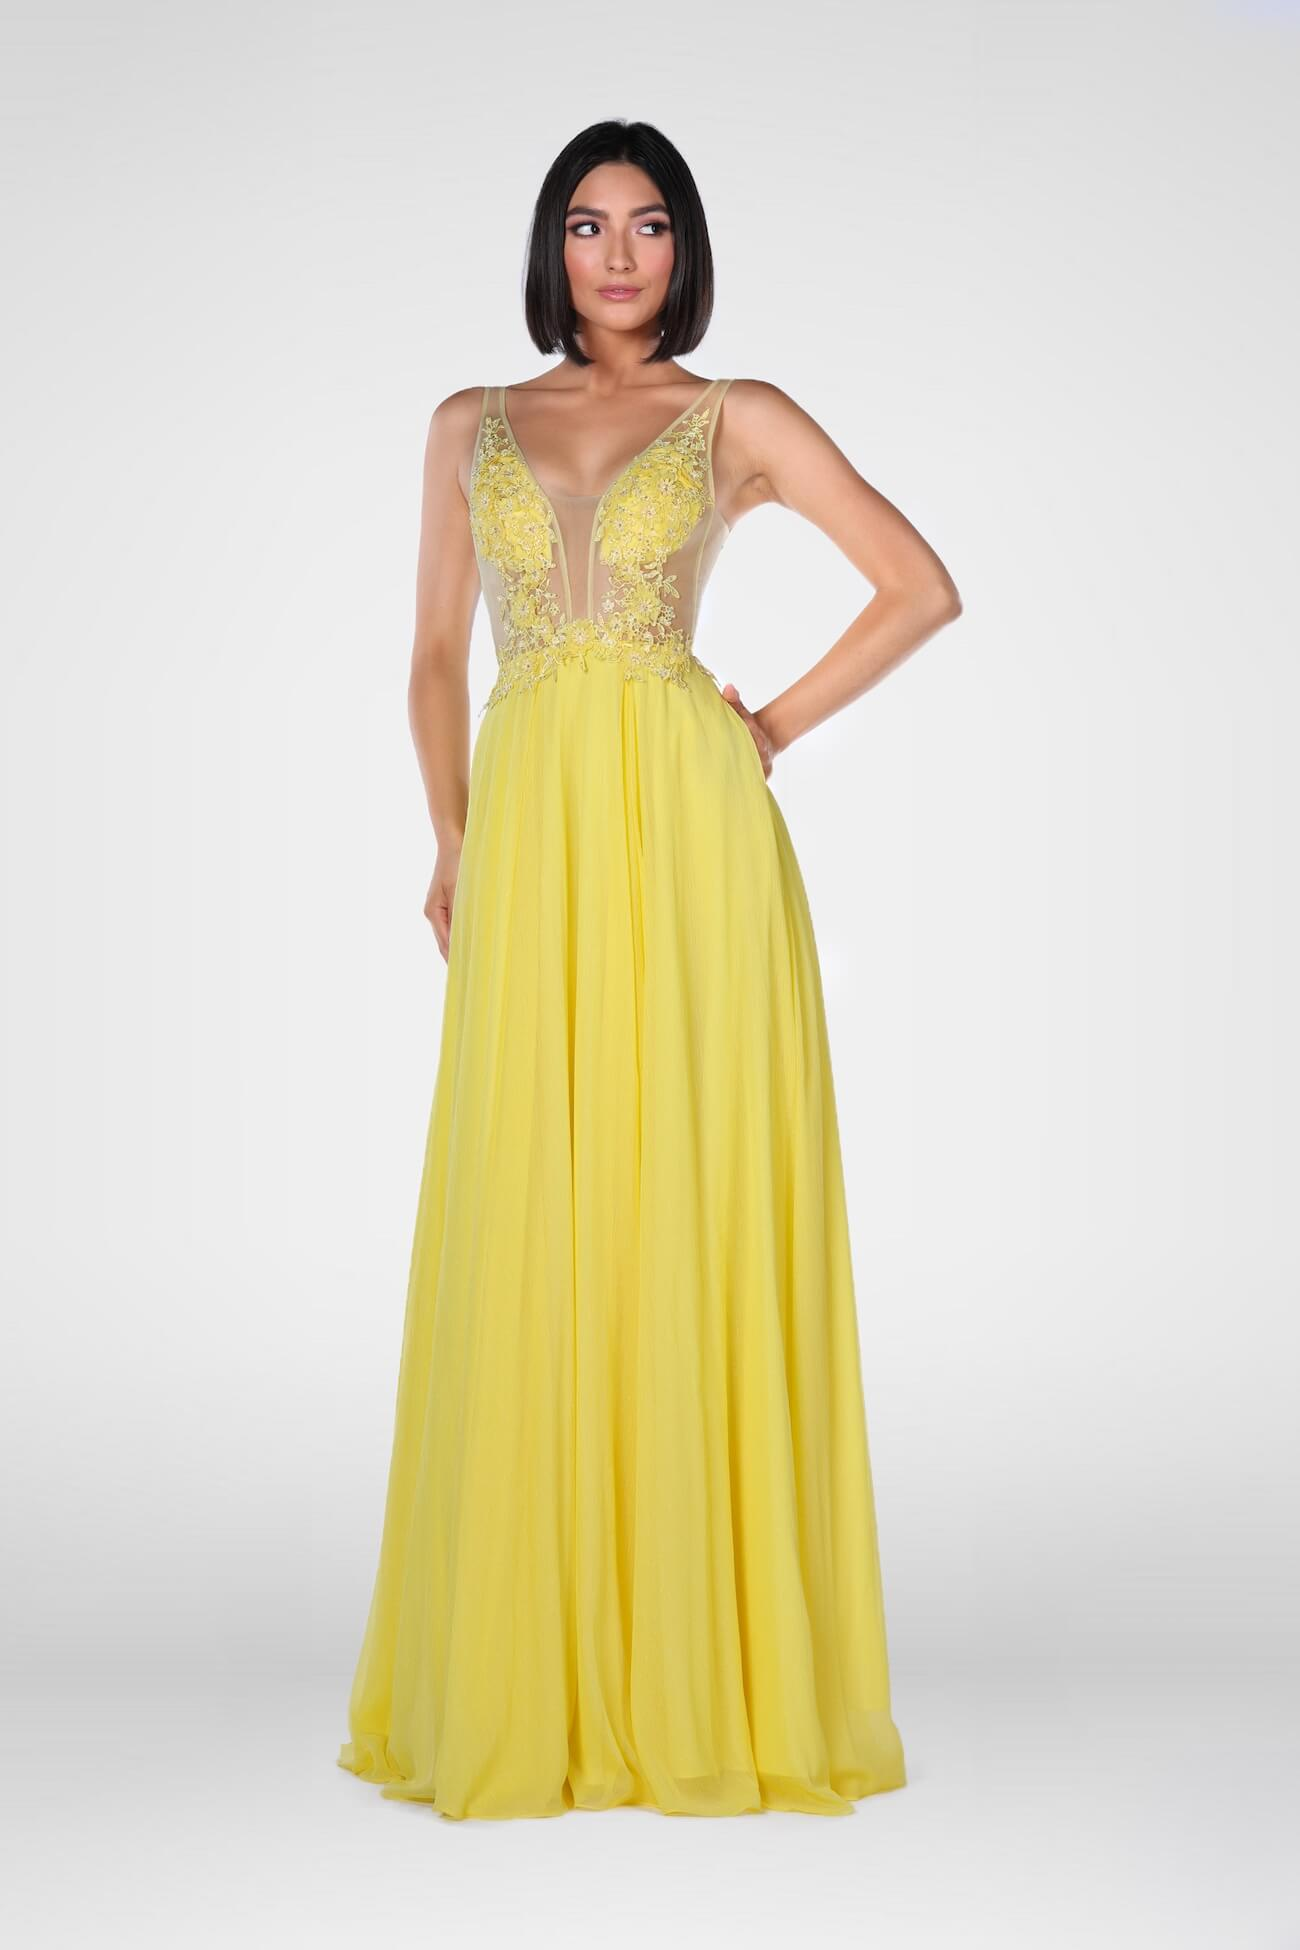 Queenly size 2 Vienna Yellow A-line evening gown/formal dress